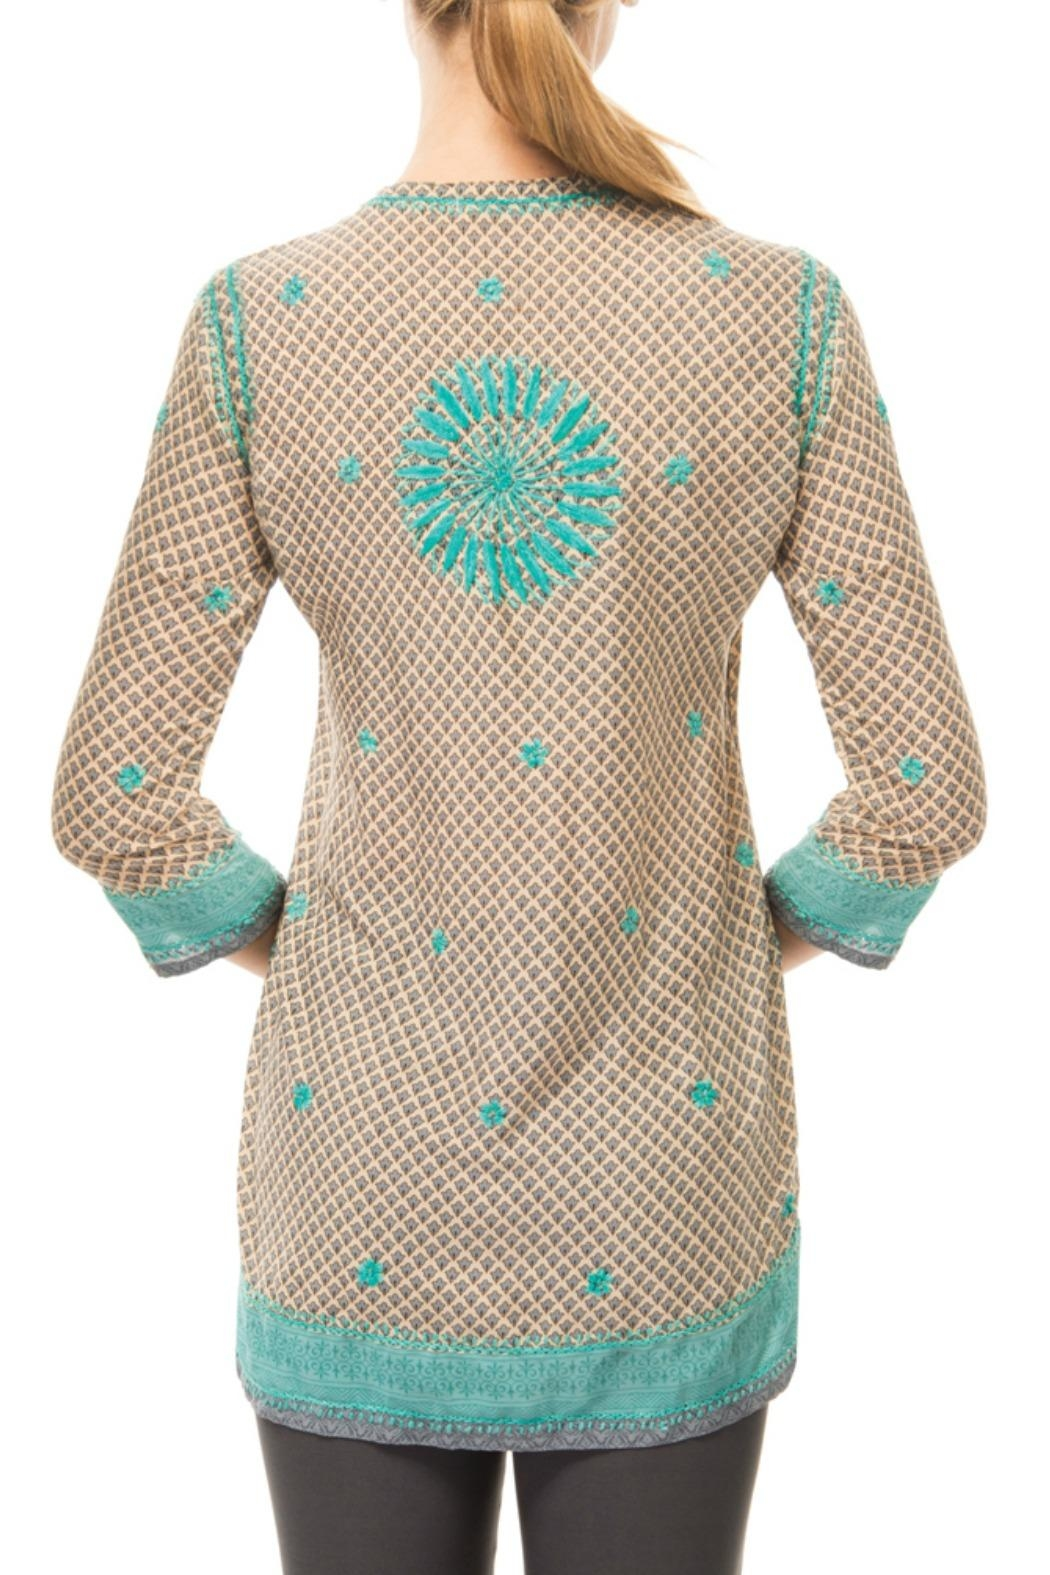 Gretchen Scott Silk Embroidered Tunic Top - Side Cropped Image